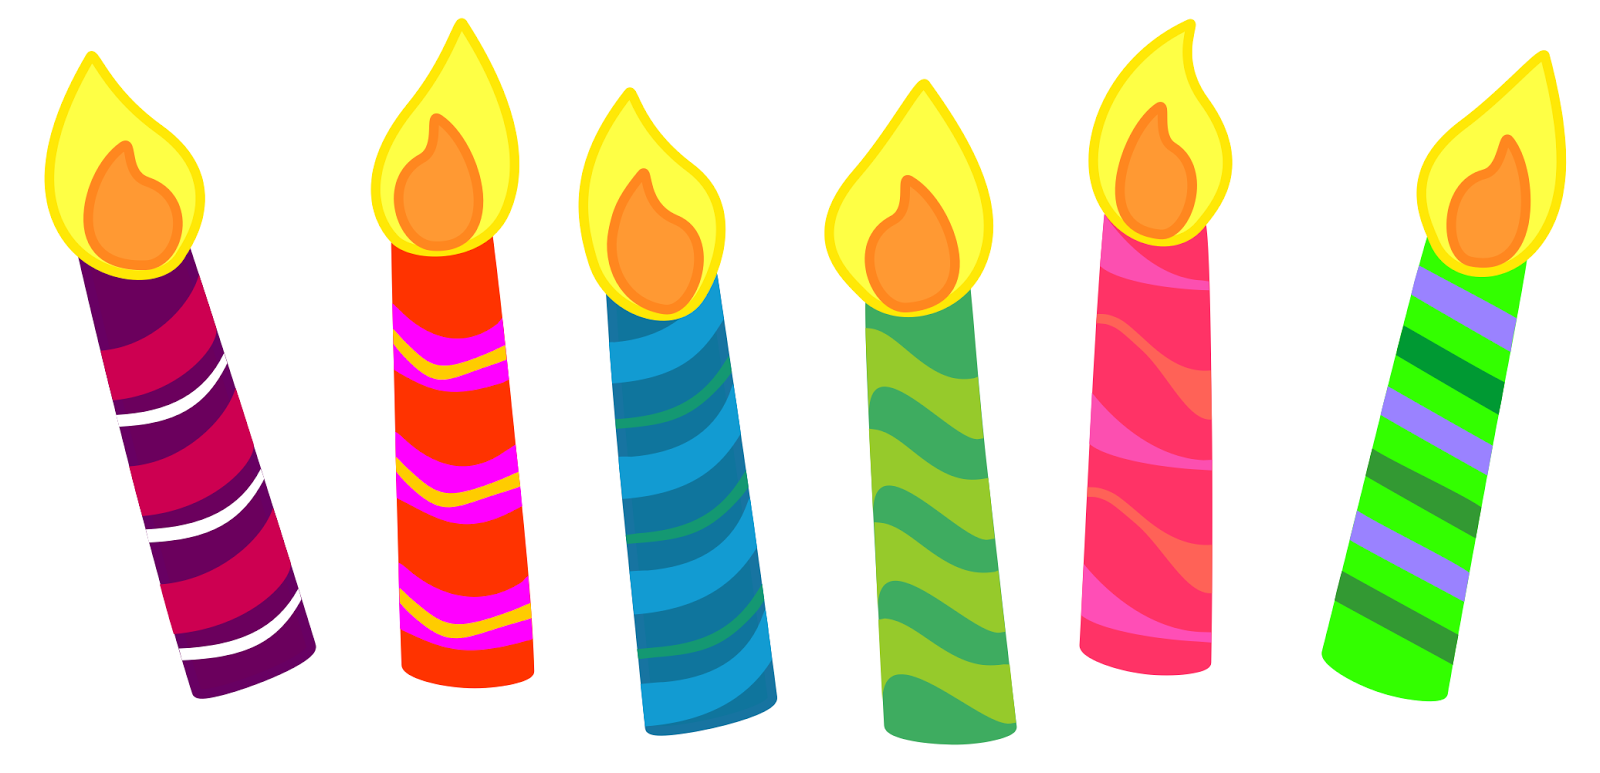 Birthday cake candle clipart png 3 Birthday Cake Candles Clipart - Clipart Kid png